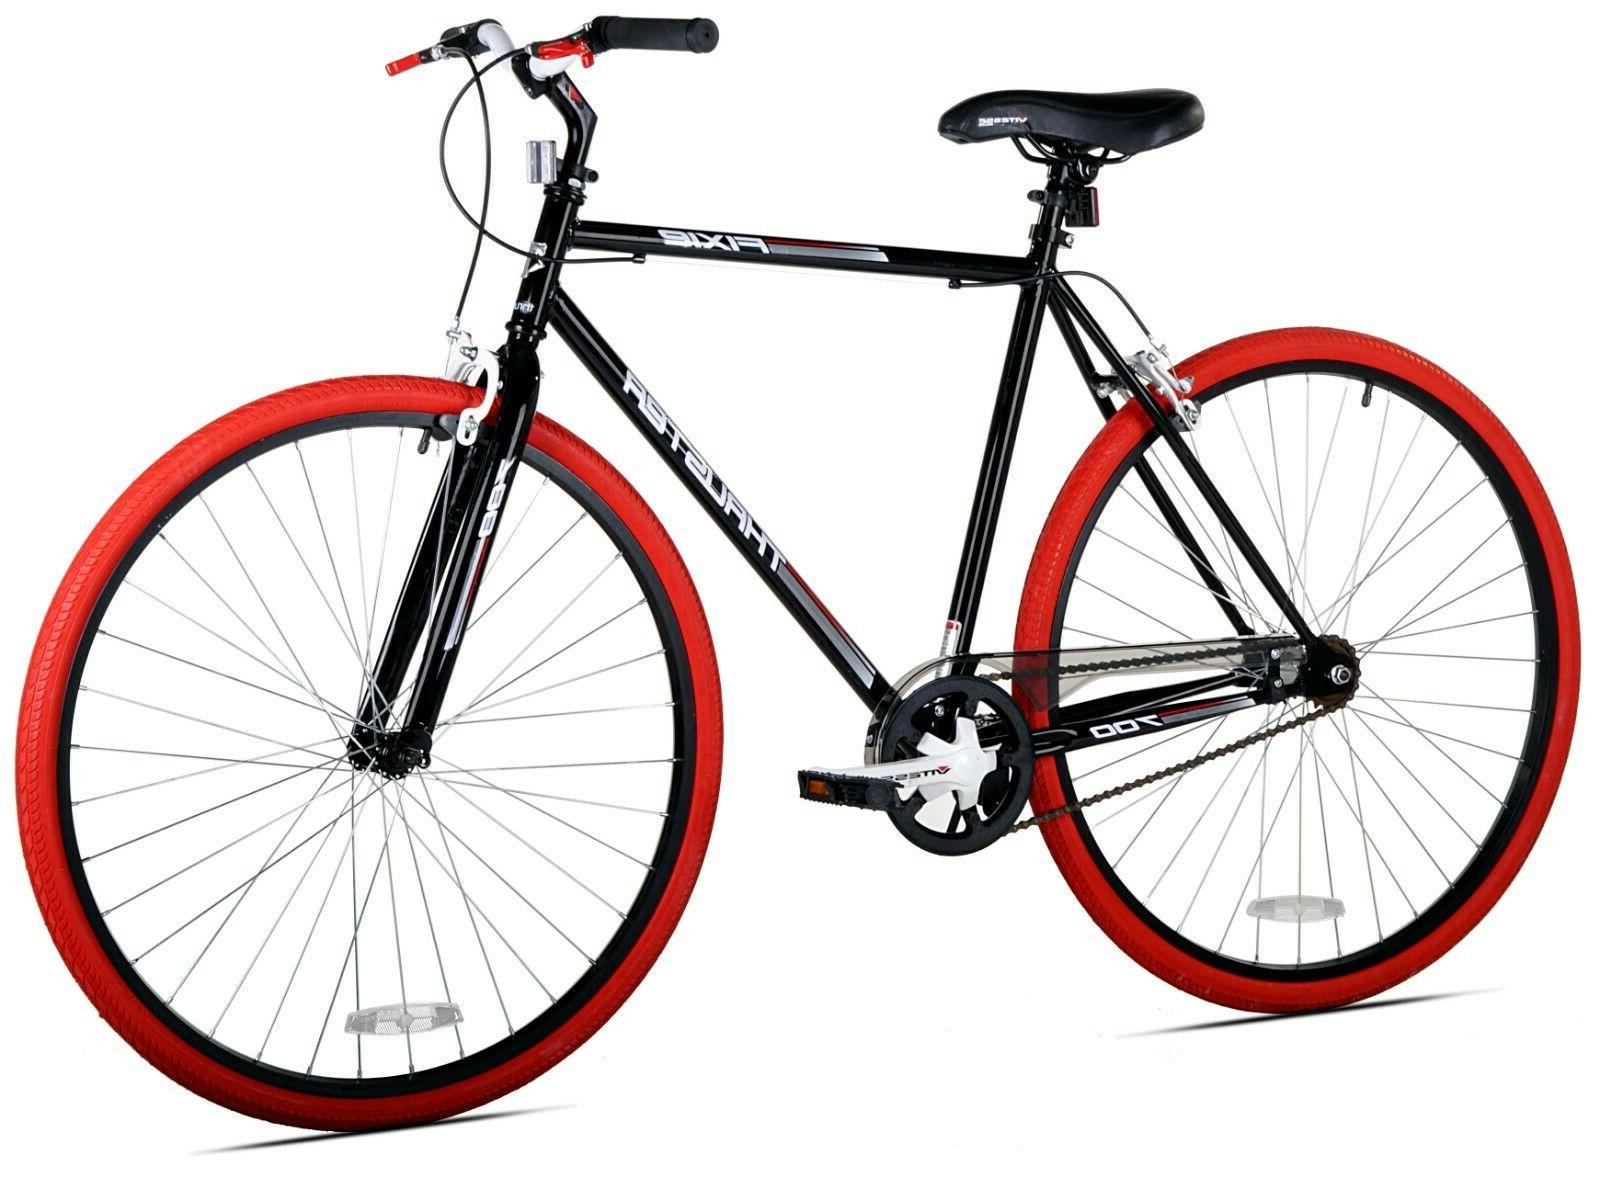 Kent 700c Thruster Fixie Men's Bike -  Black - Red - New